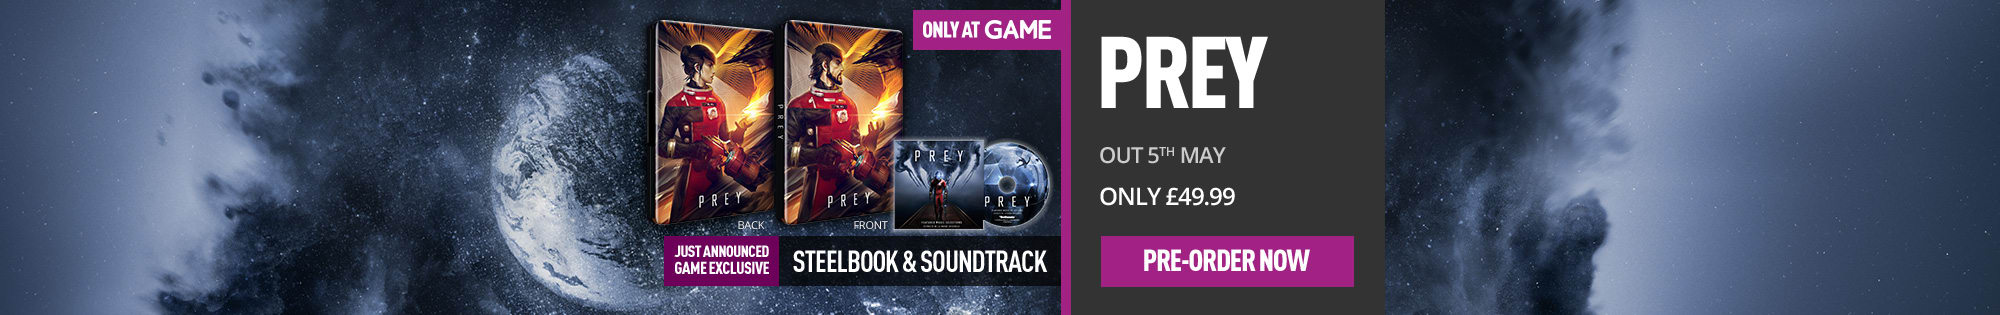 Prey for PlayStation 4, Xbox One and PC - Homepage Banner